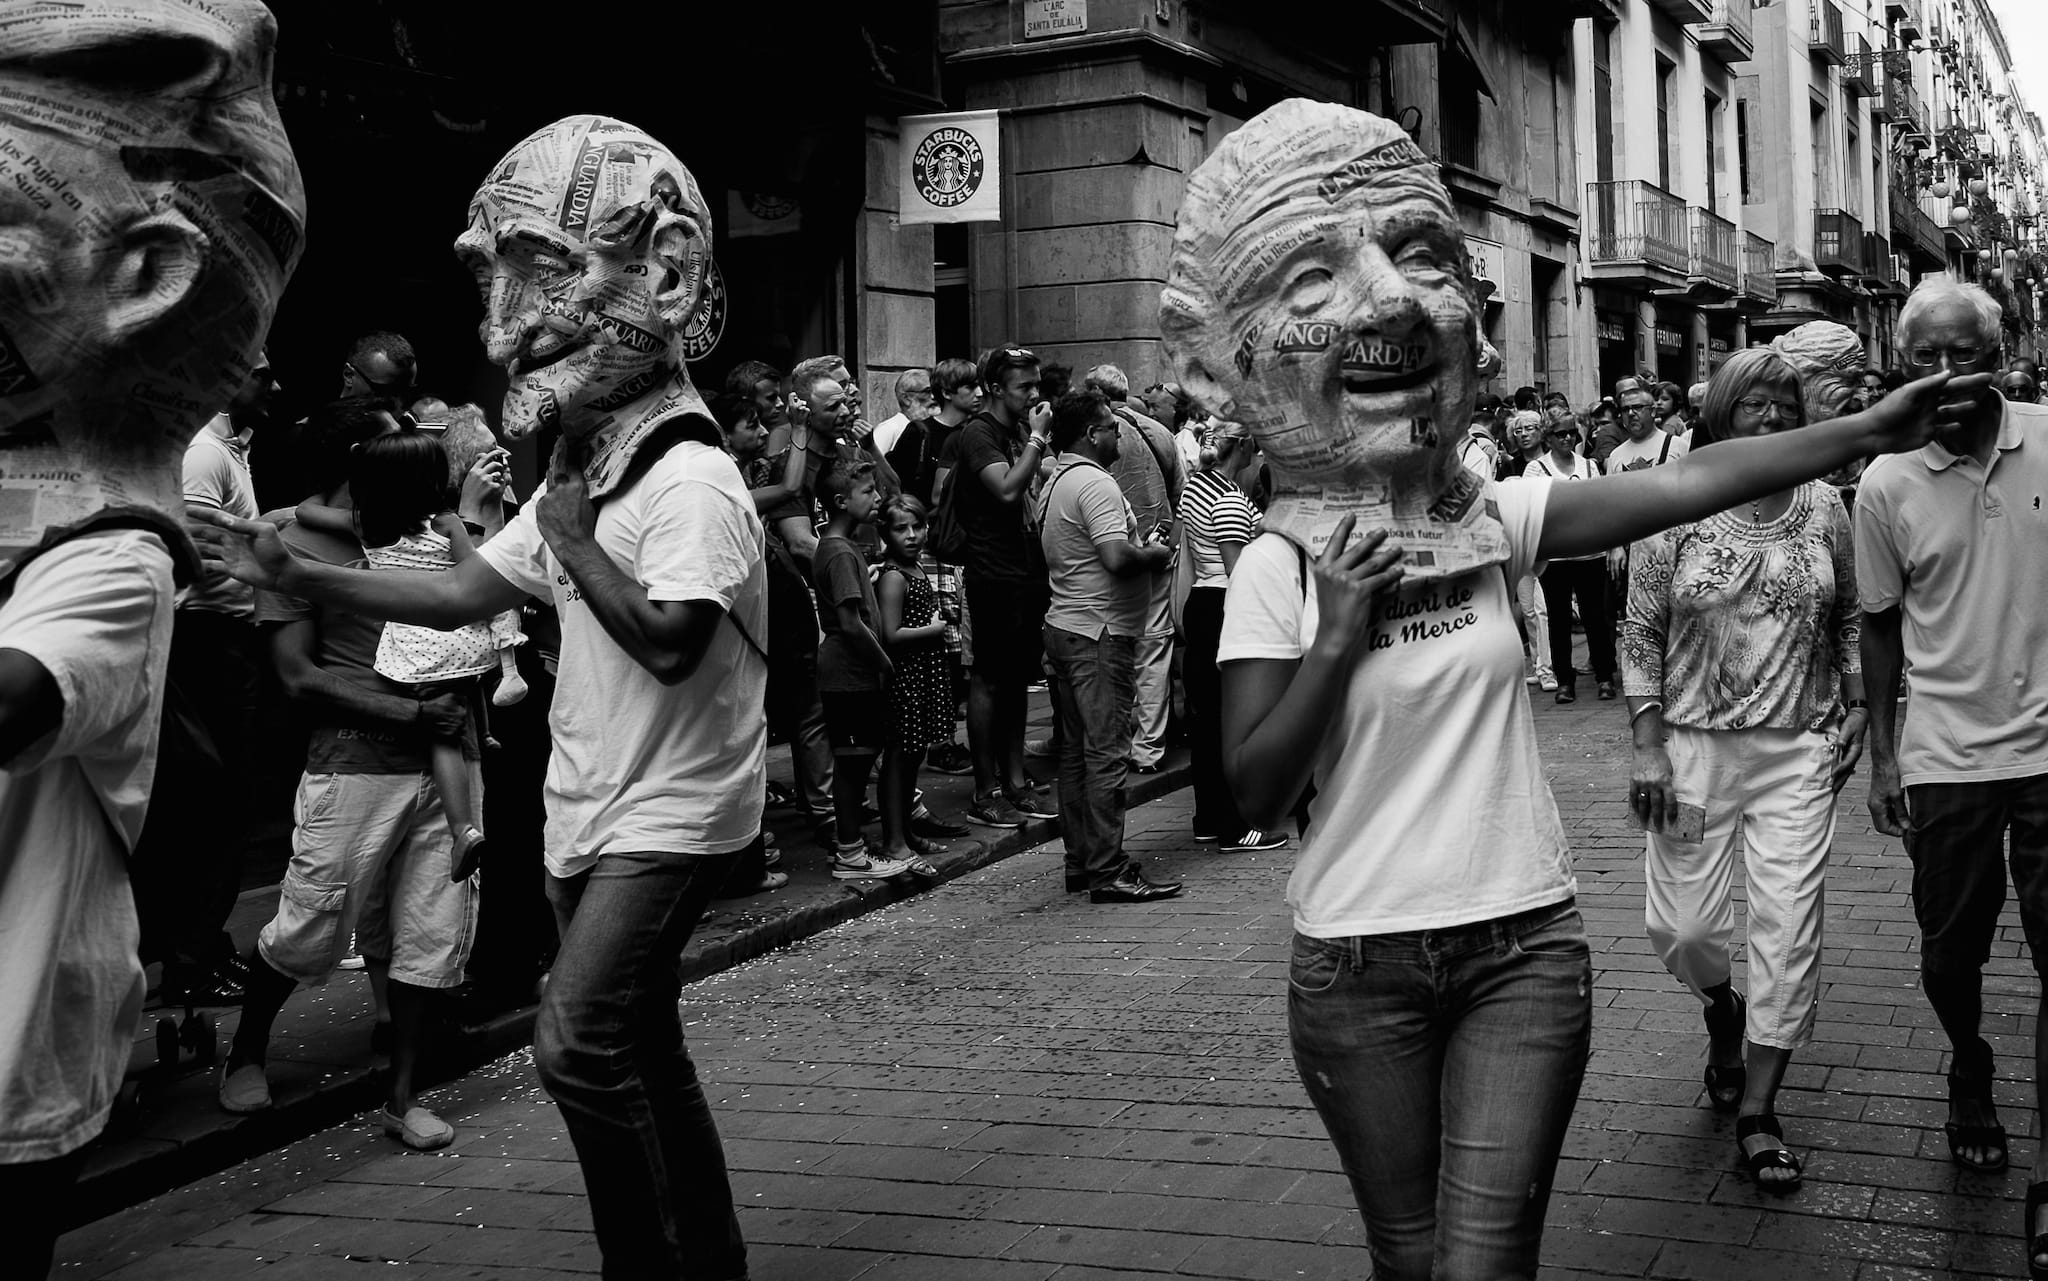 """Capgrossos"" (""Traditional Catalan 'Big heads' figures"")  by Jordi Mallol i Comas Shot in Barcelona, Catalonia, Spain the 24th September 2014"